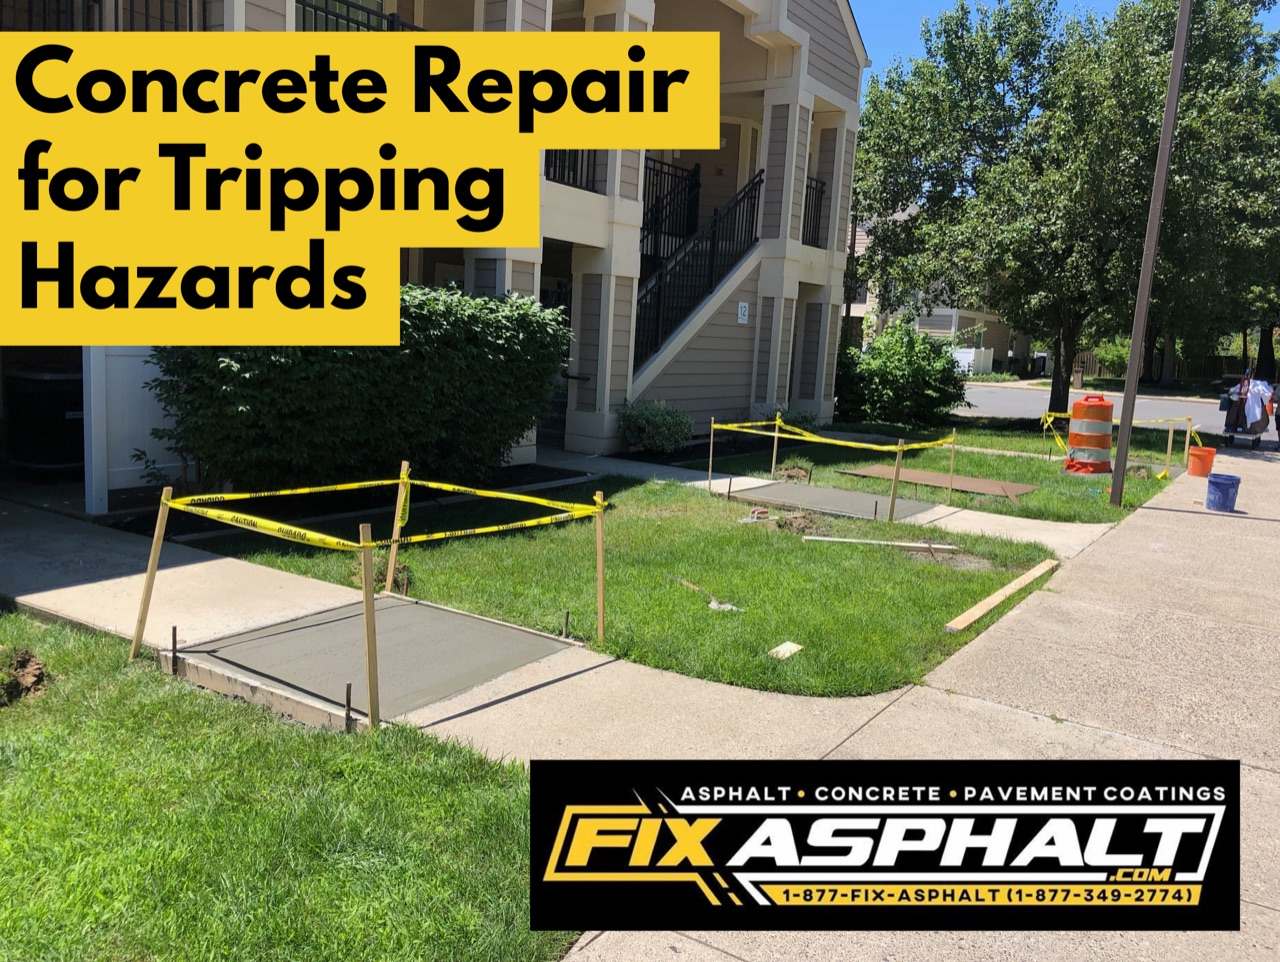 Concrete Repair for Tripping Hazards